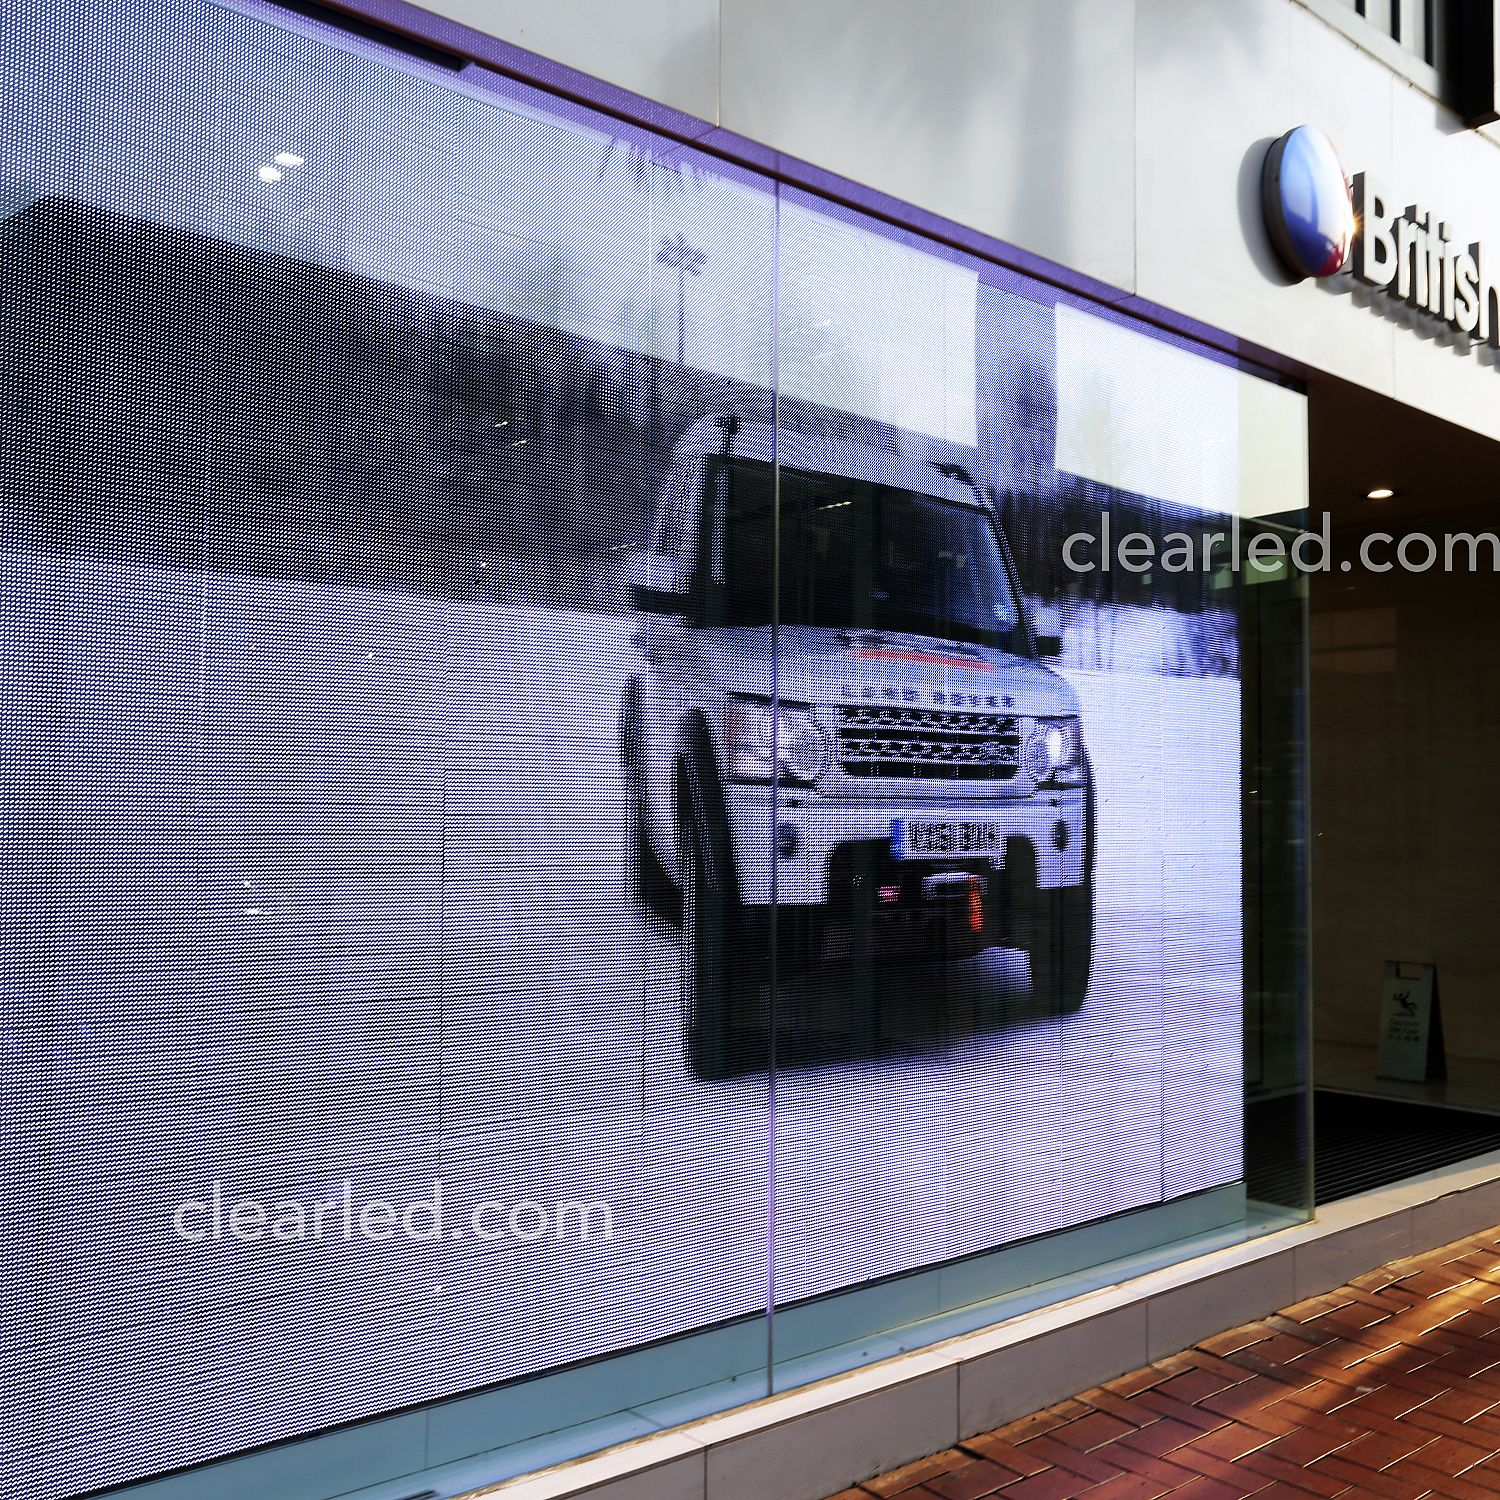 transparent led wall displays - clearled